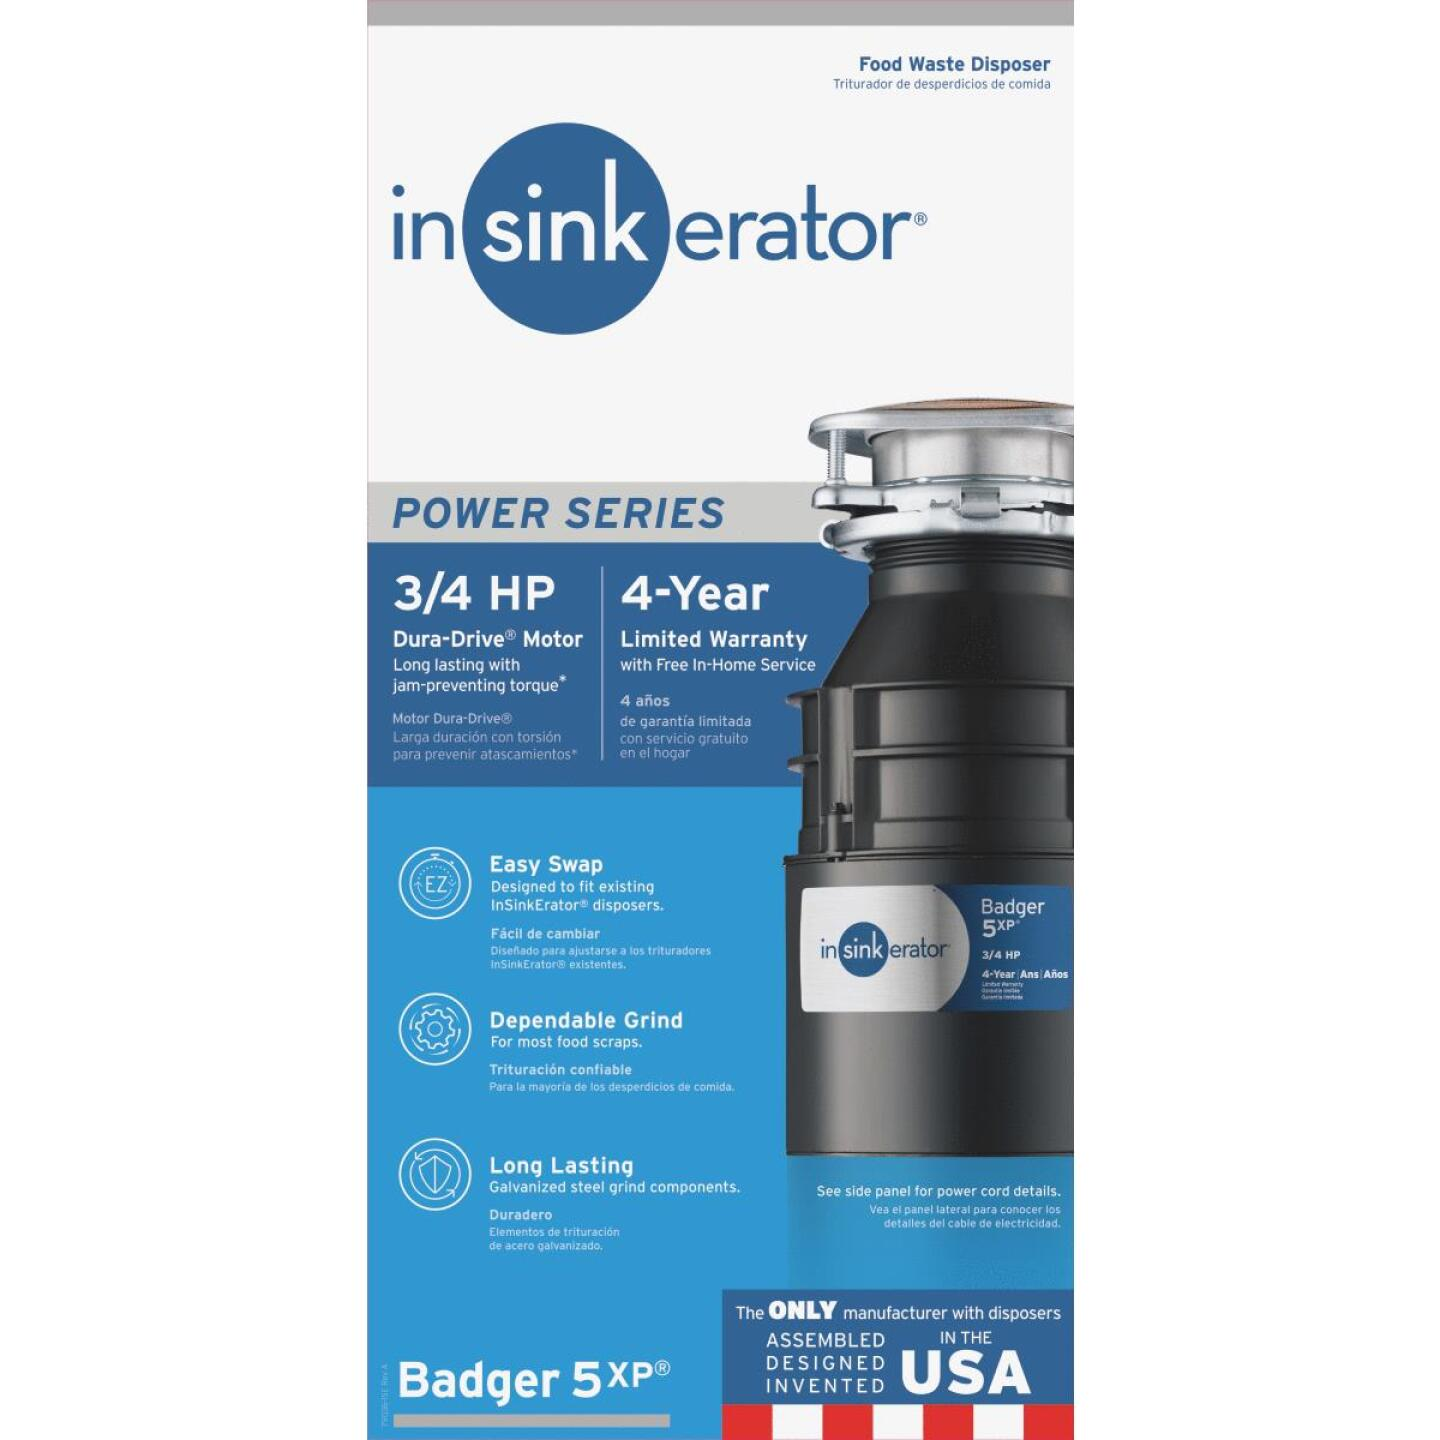 Insinkerator Badger 3/4 HP Dura-Drive Garbage Disposal, 4 Year Warranty Image 1